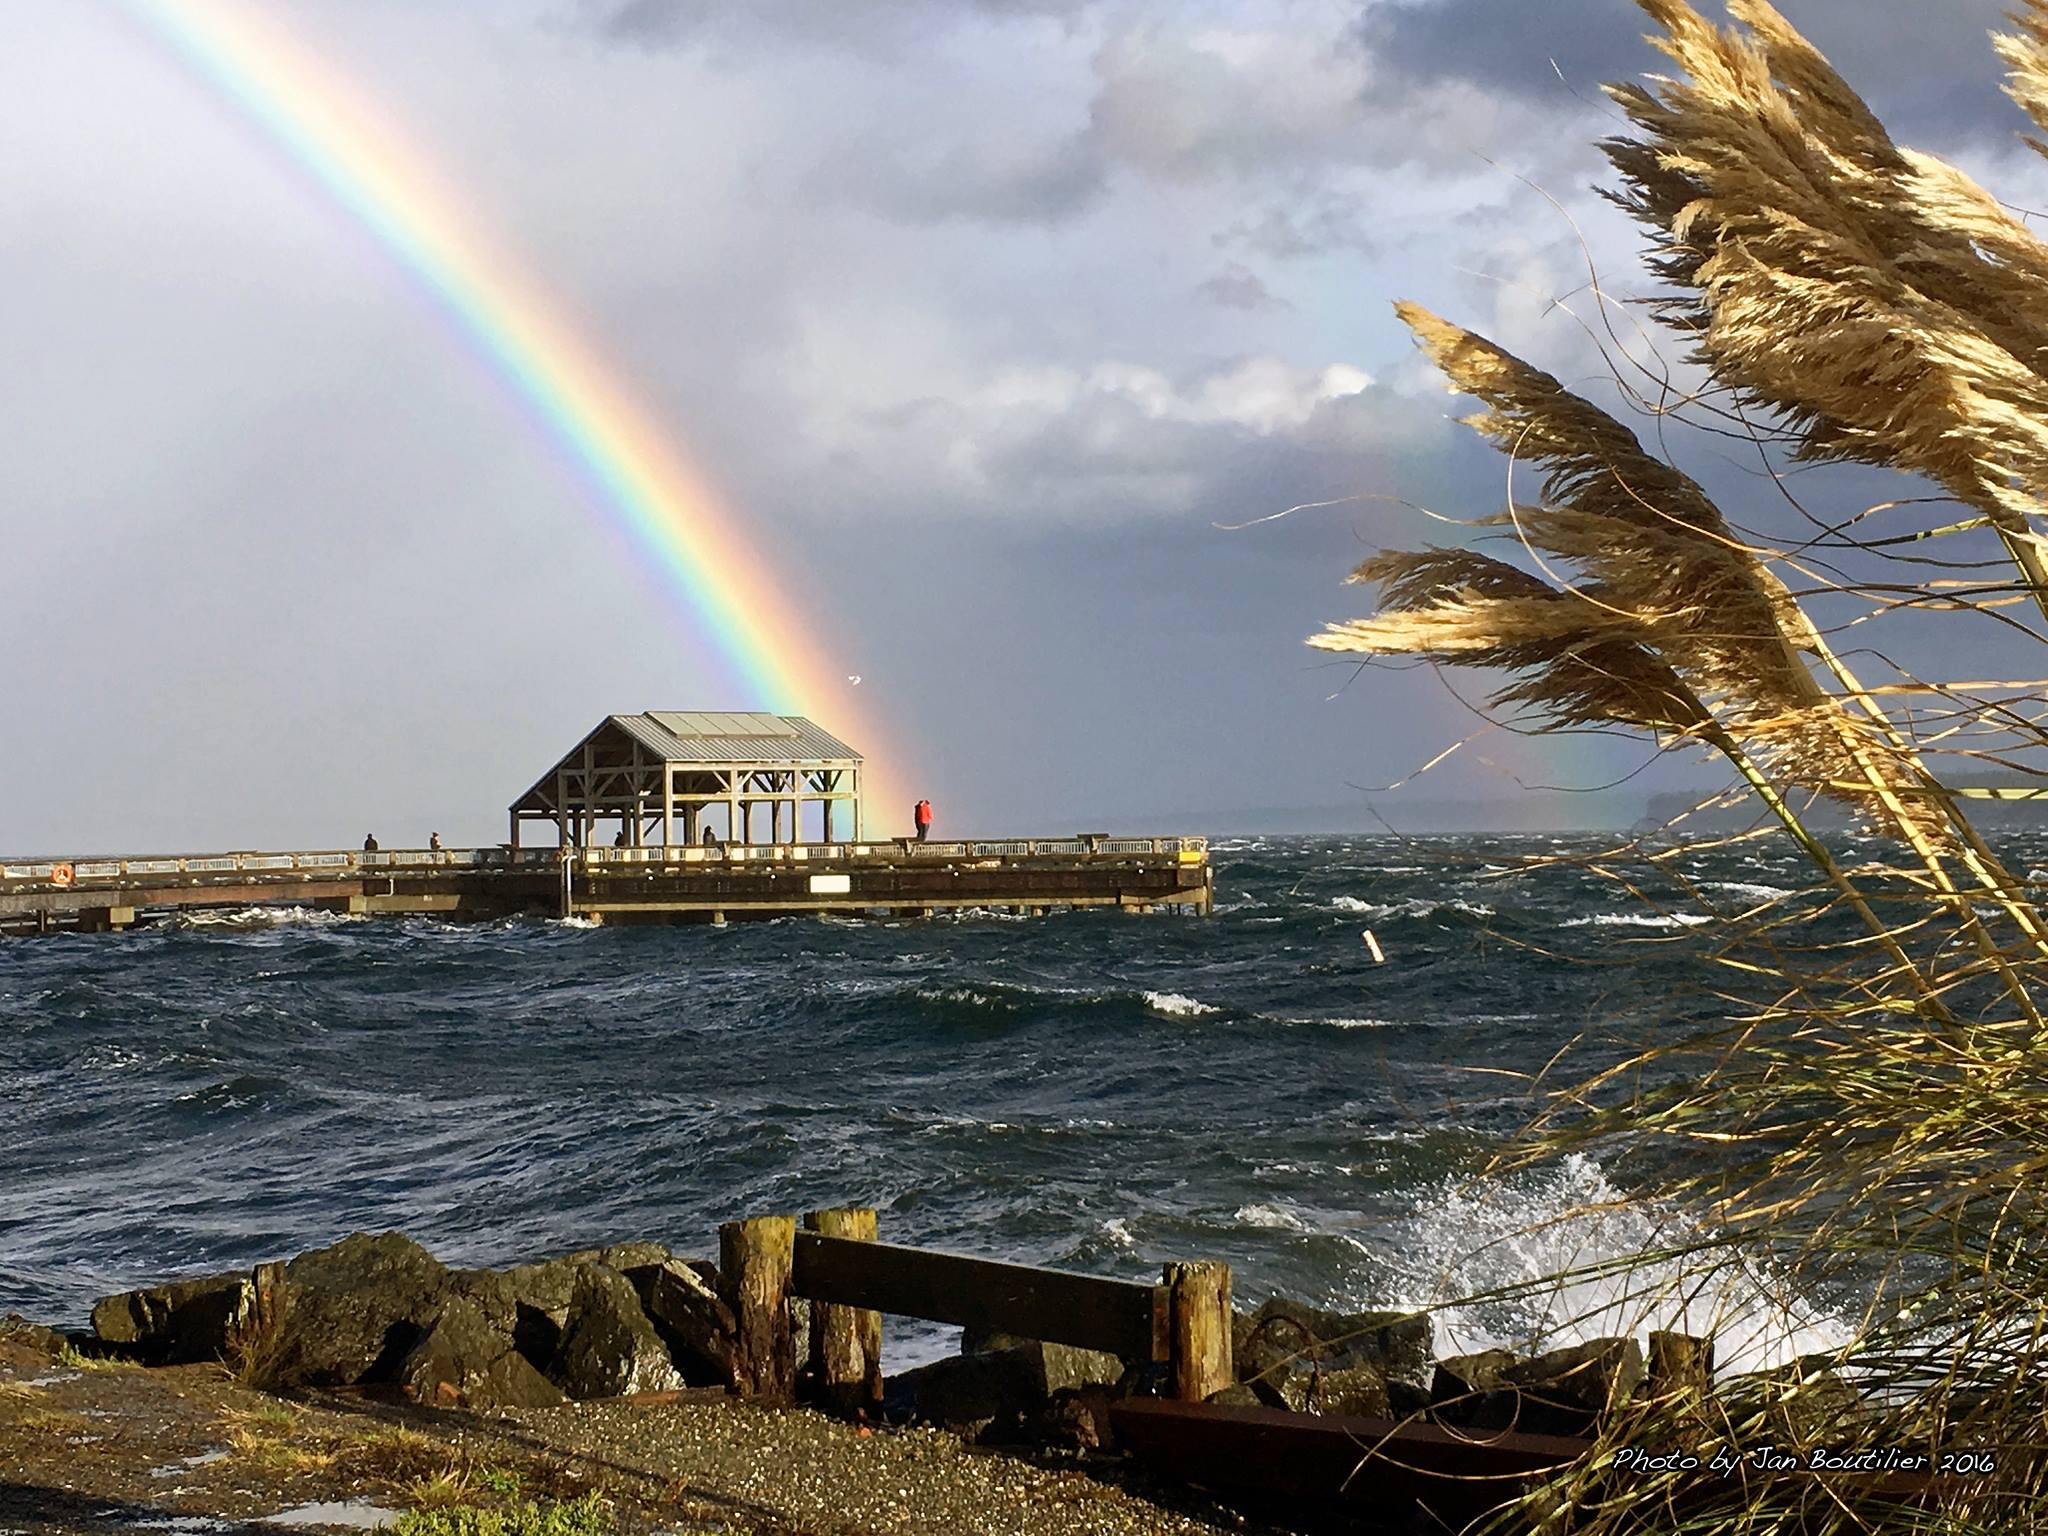 Storm Port Townsend 10/15/16, Photo by Jan Klockers Boutilier